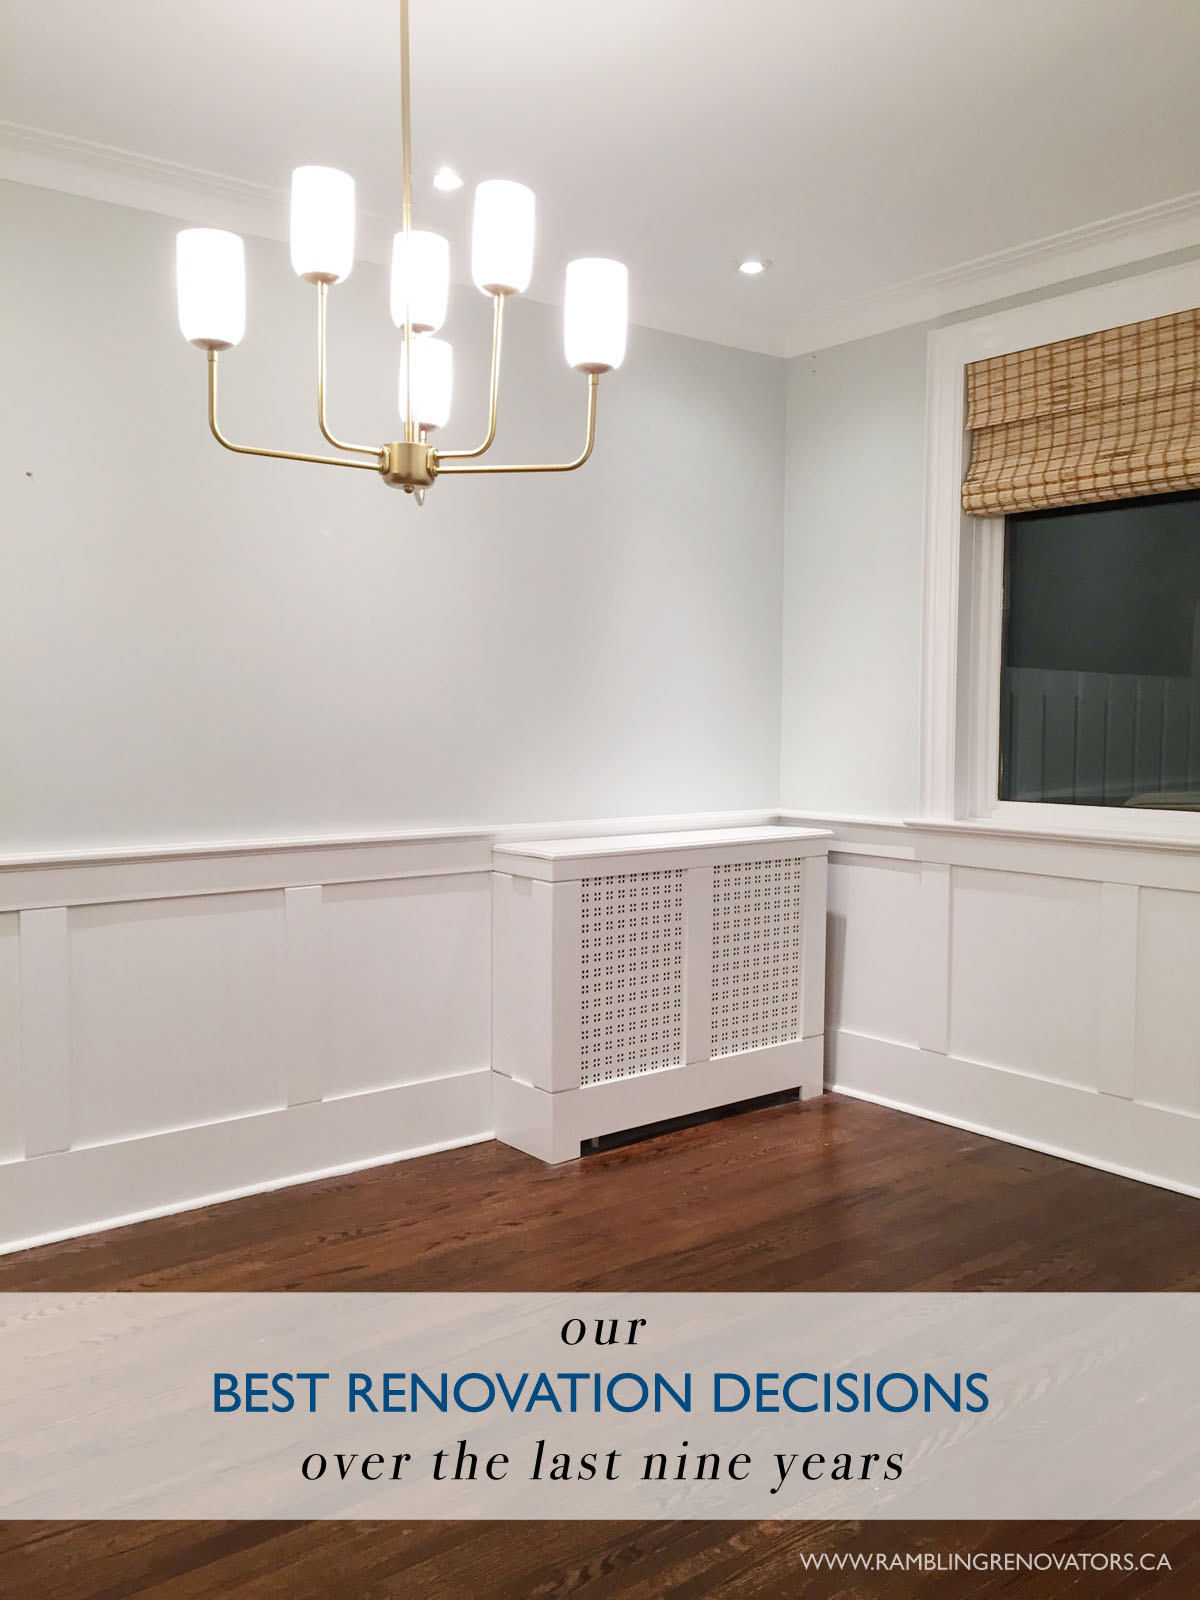 best renovation decisions | Ramblingrenovators.ca